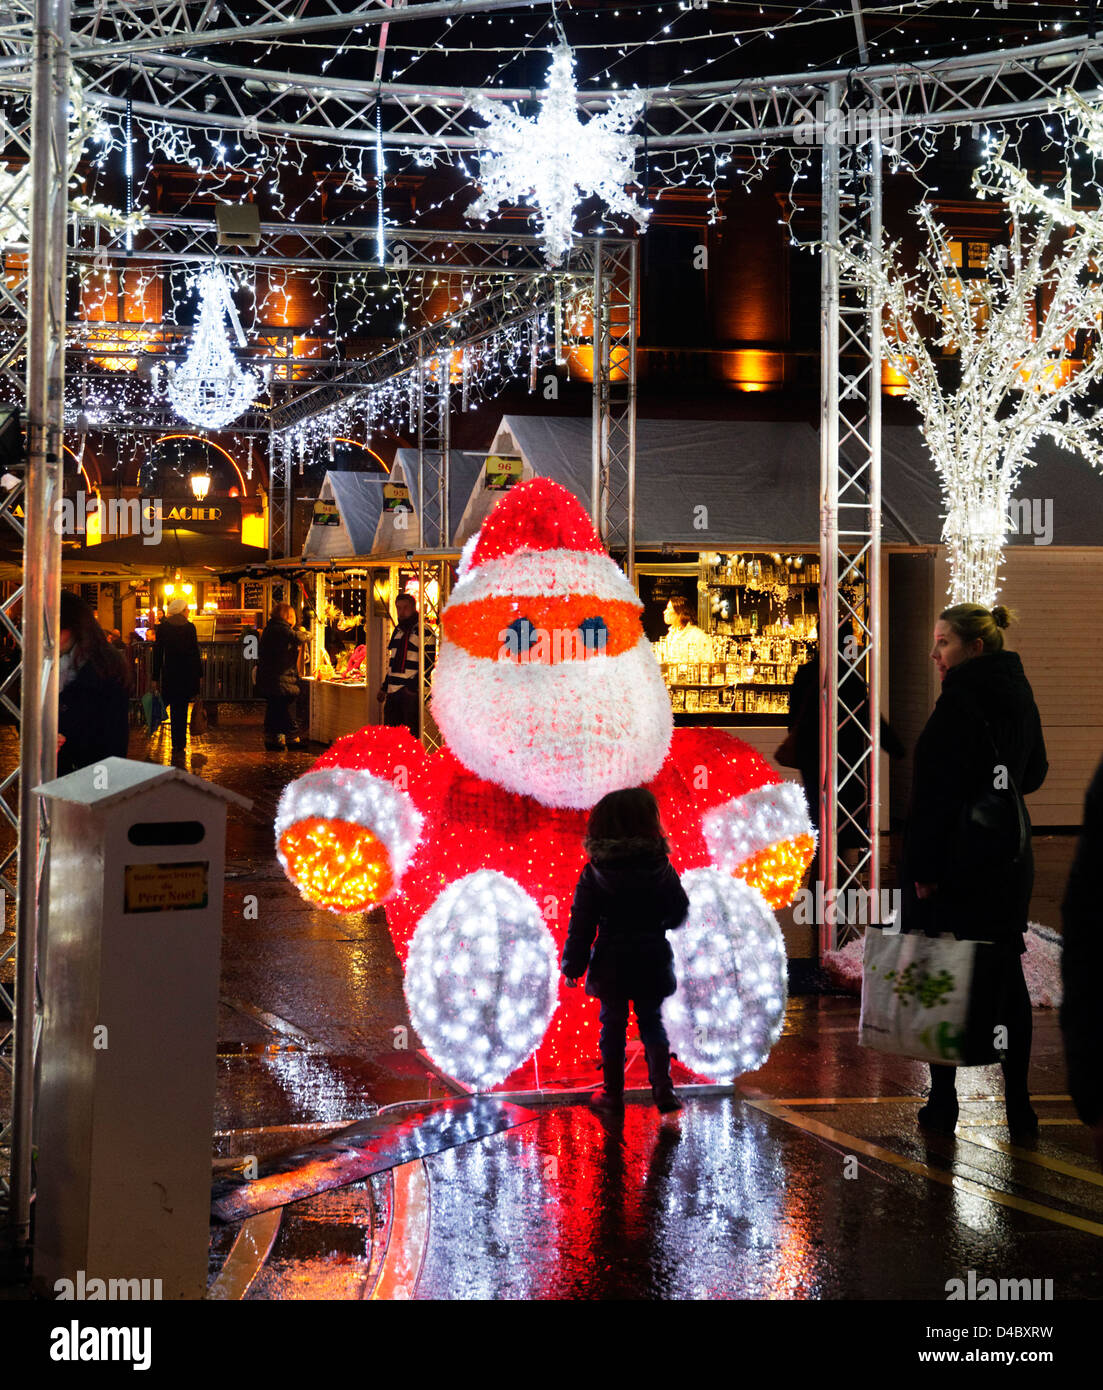 a-little-girl-looking-at-a-large-illuminated-father-christmas-at-the-D4BXRW.jpg